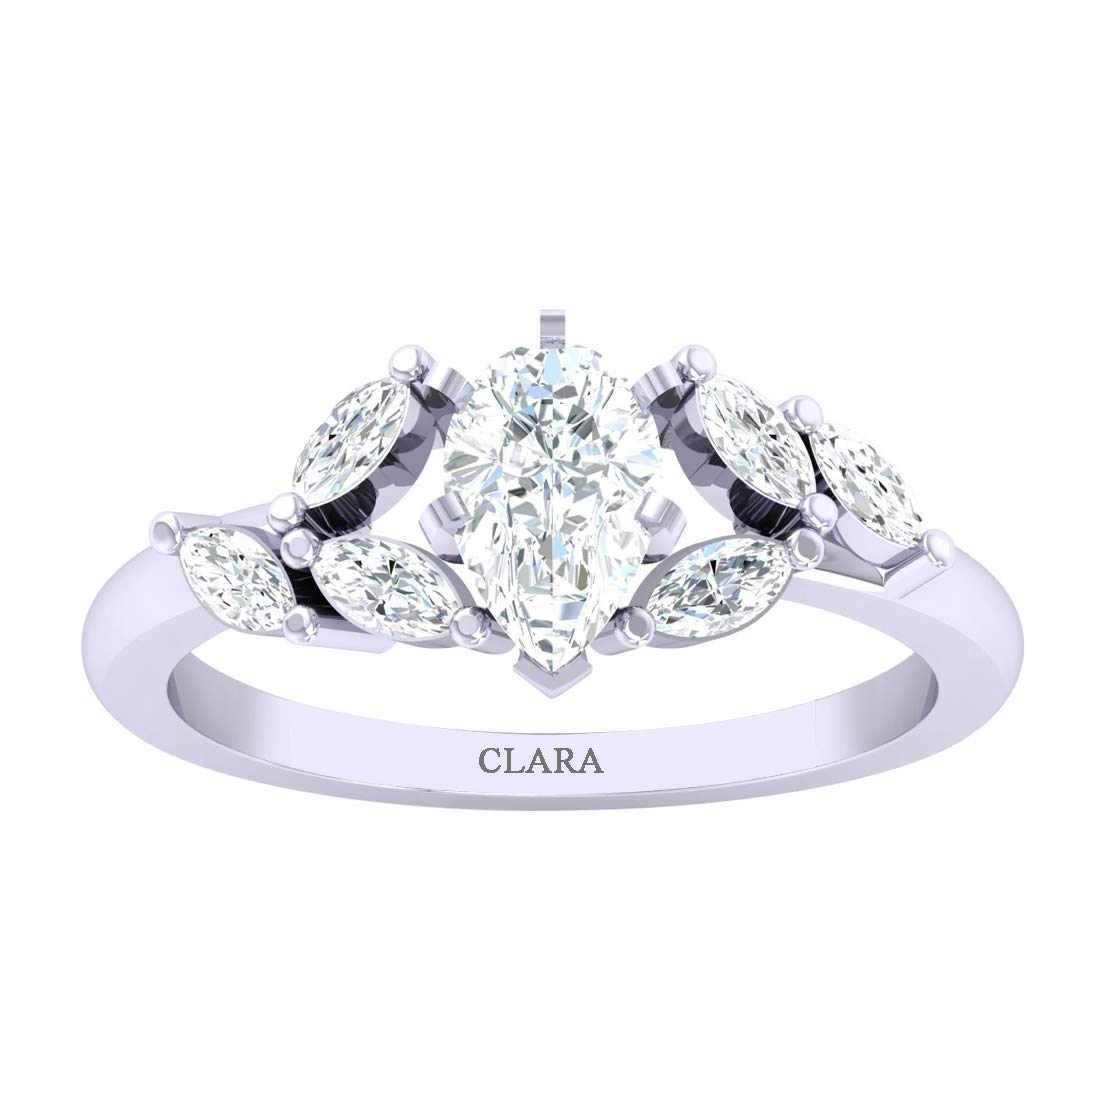 CLARA Certified Coral 5.5cts or 6.25ratti Original Stone Sterling Silver Astrological Ring for Men and Women Moonga